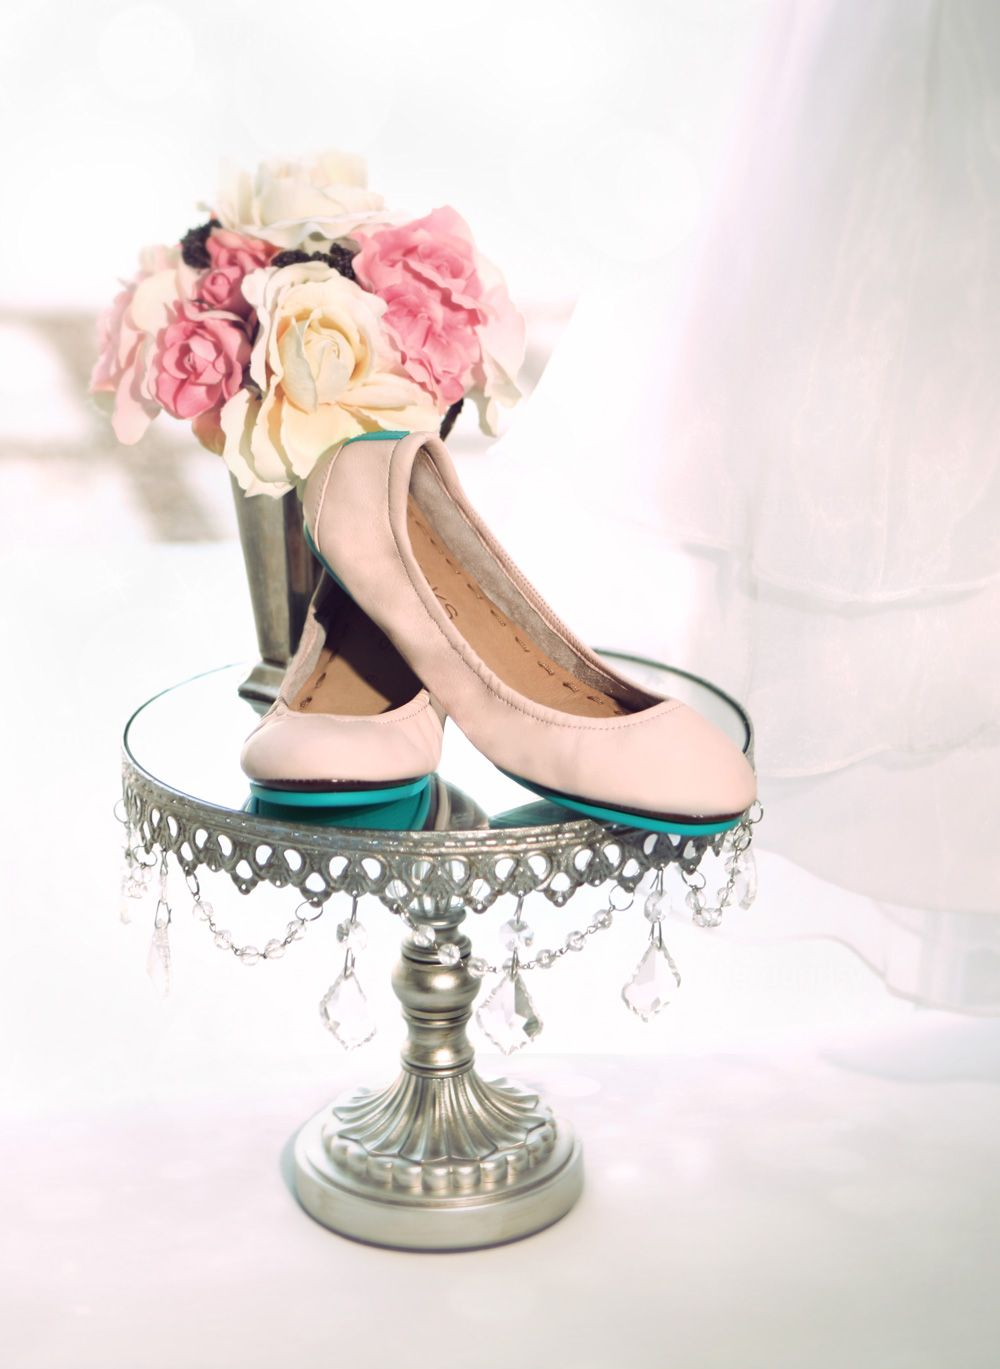 Tieks flats - perfect + comfy footwear on your wedding day! #Stellabrate